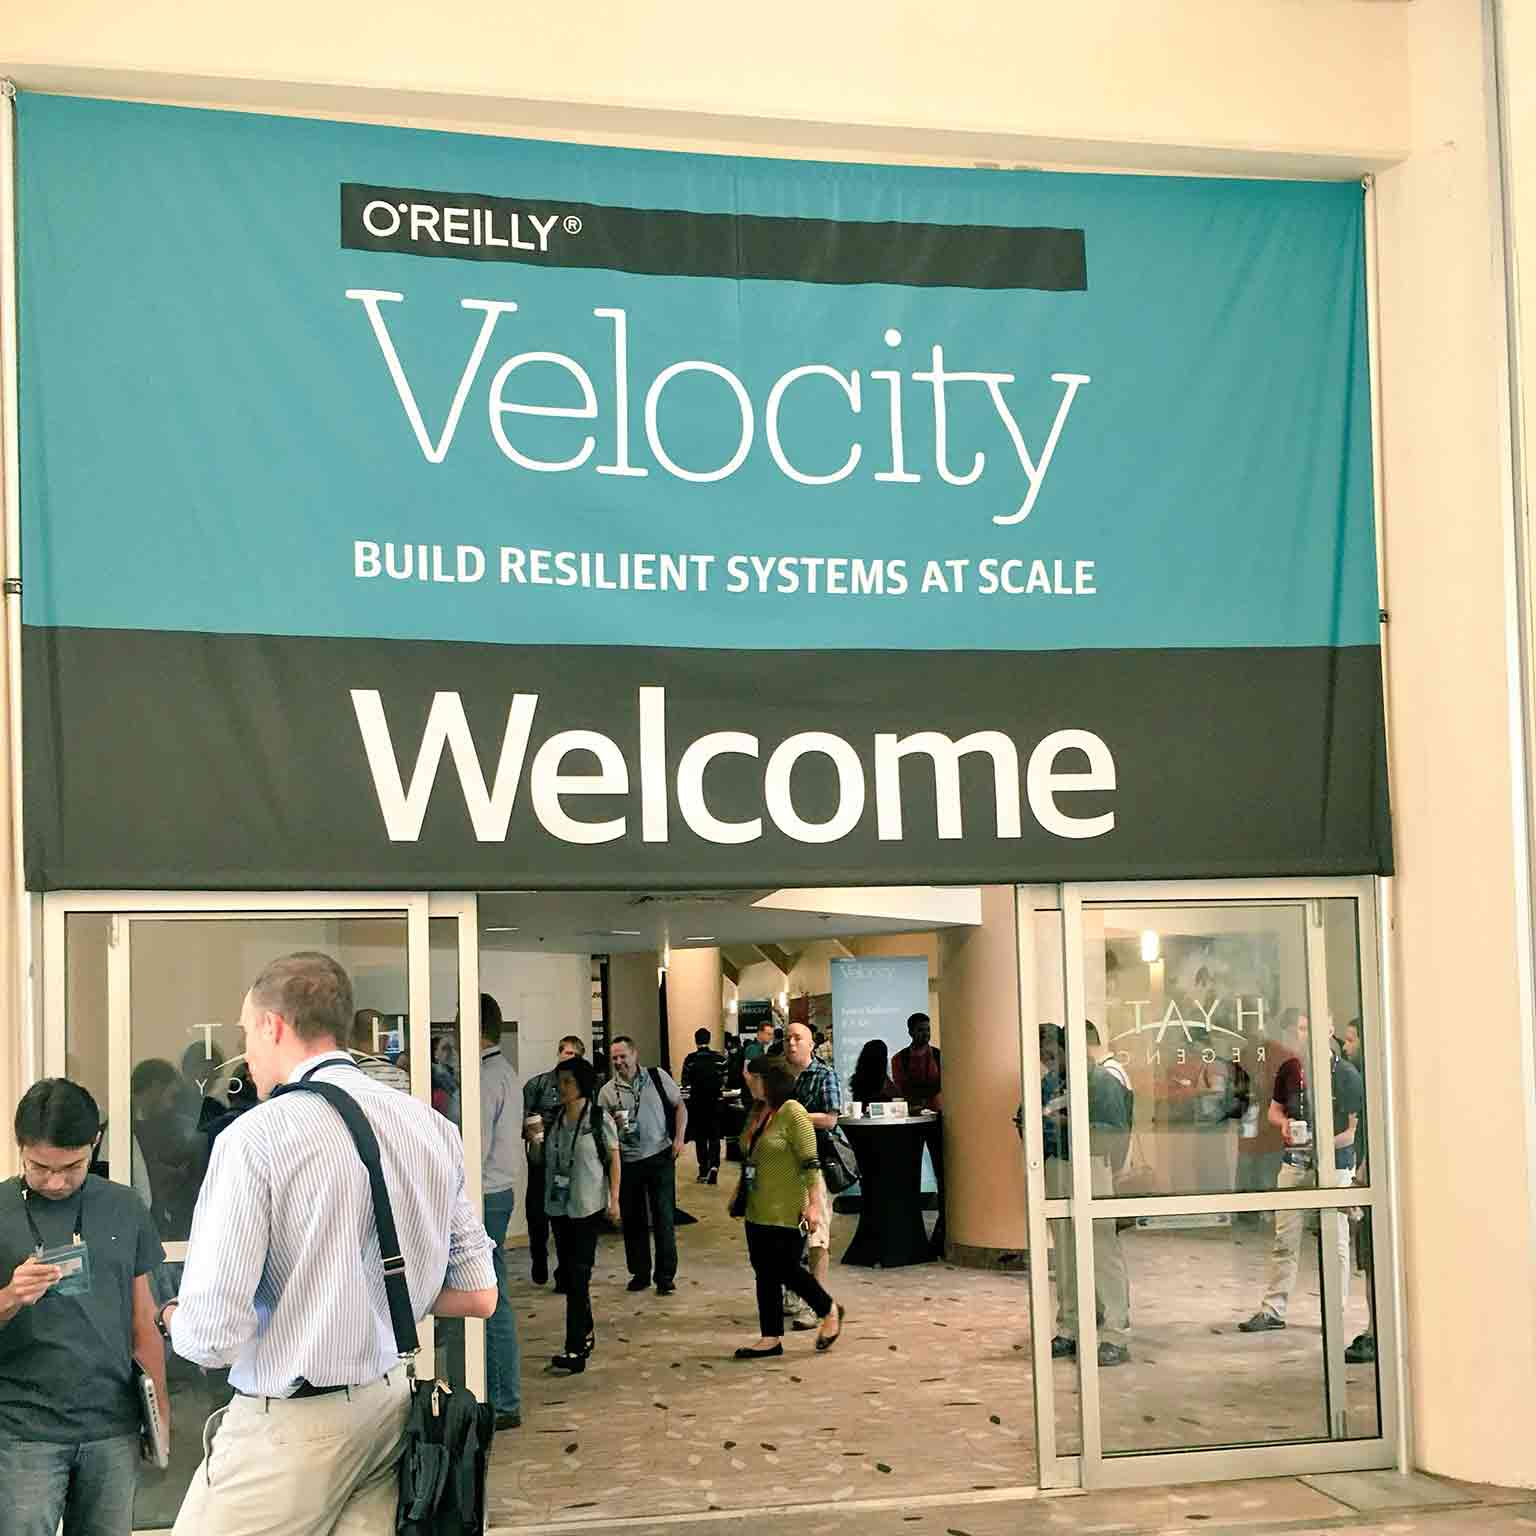 A photograph of the entrance to O'Reilly Velocity in San Jose